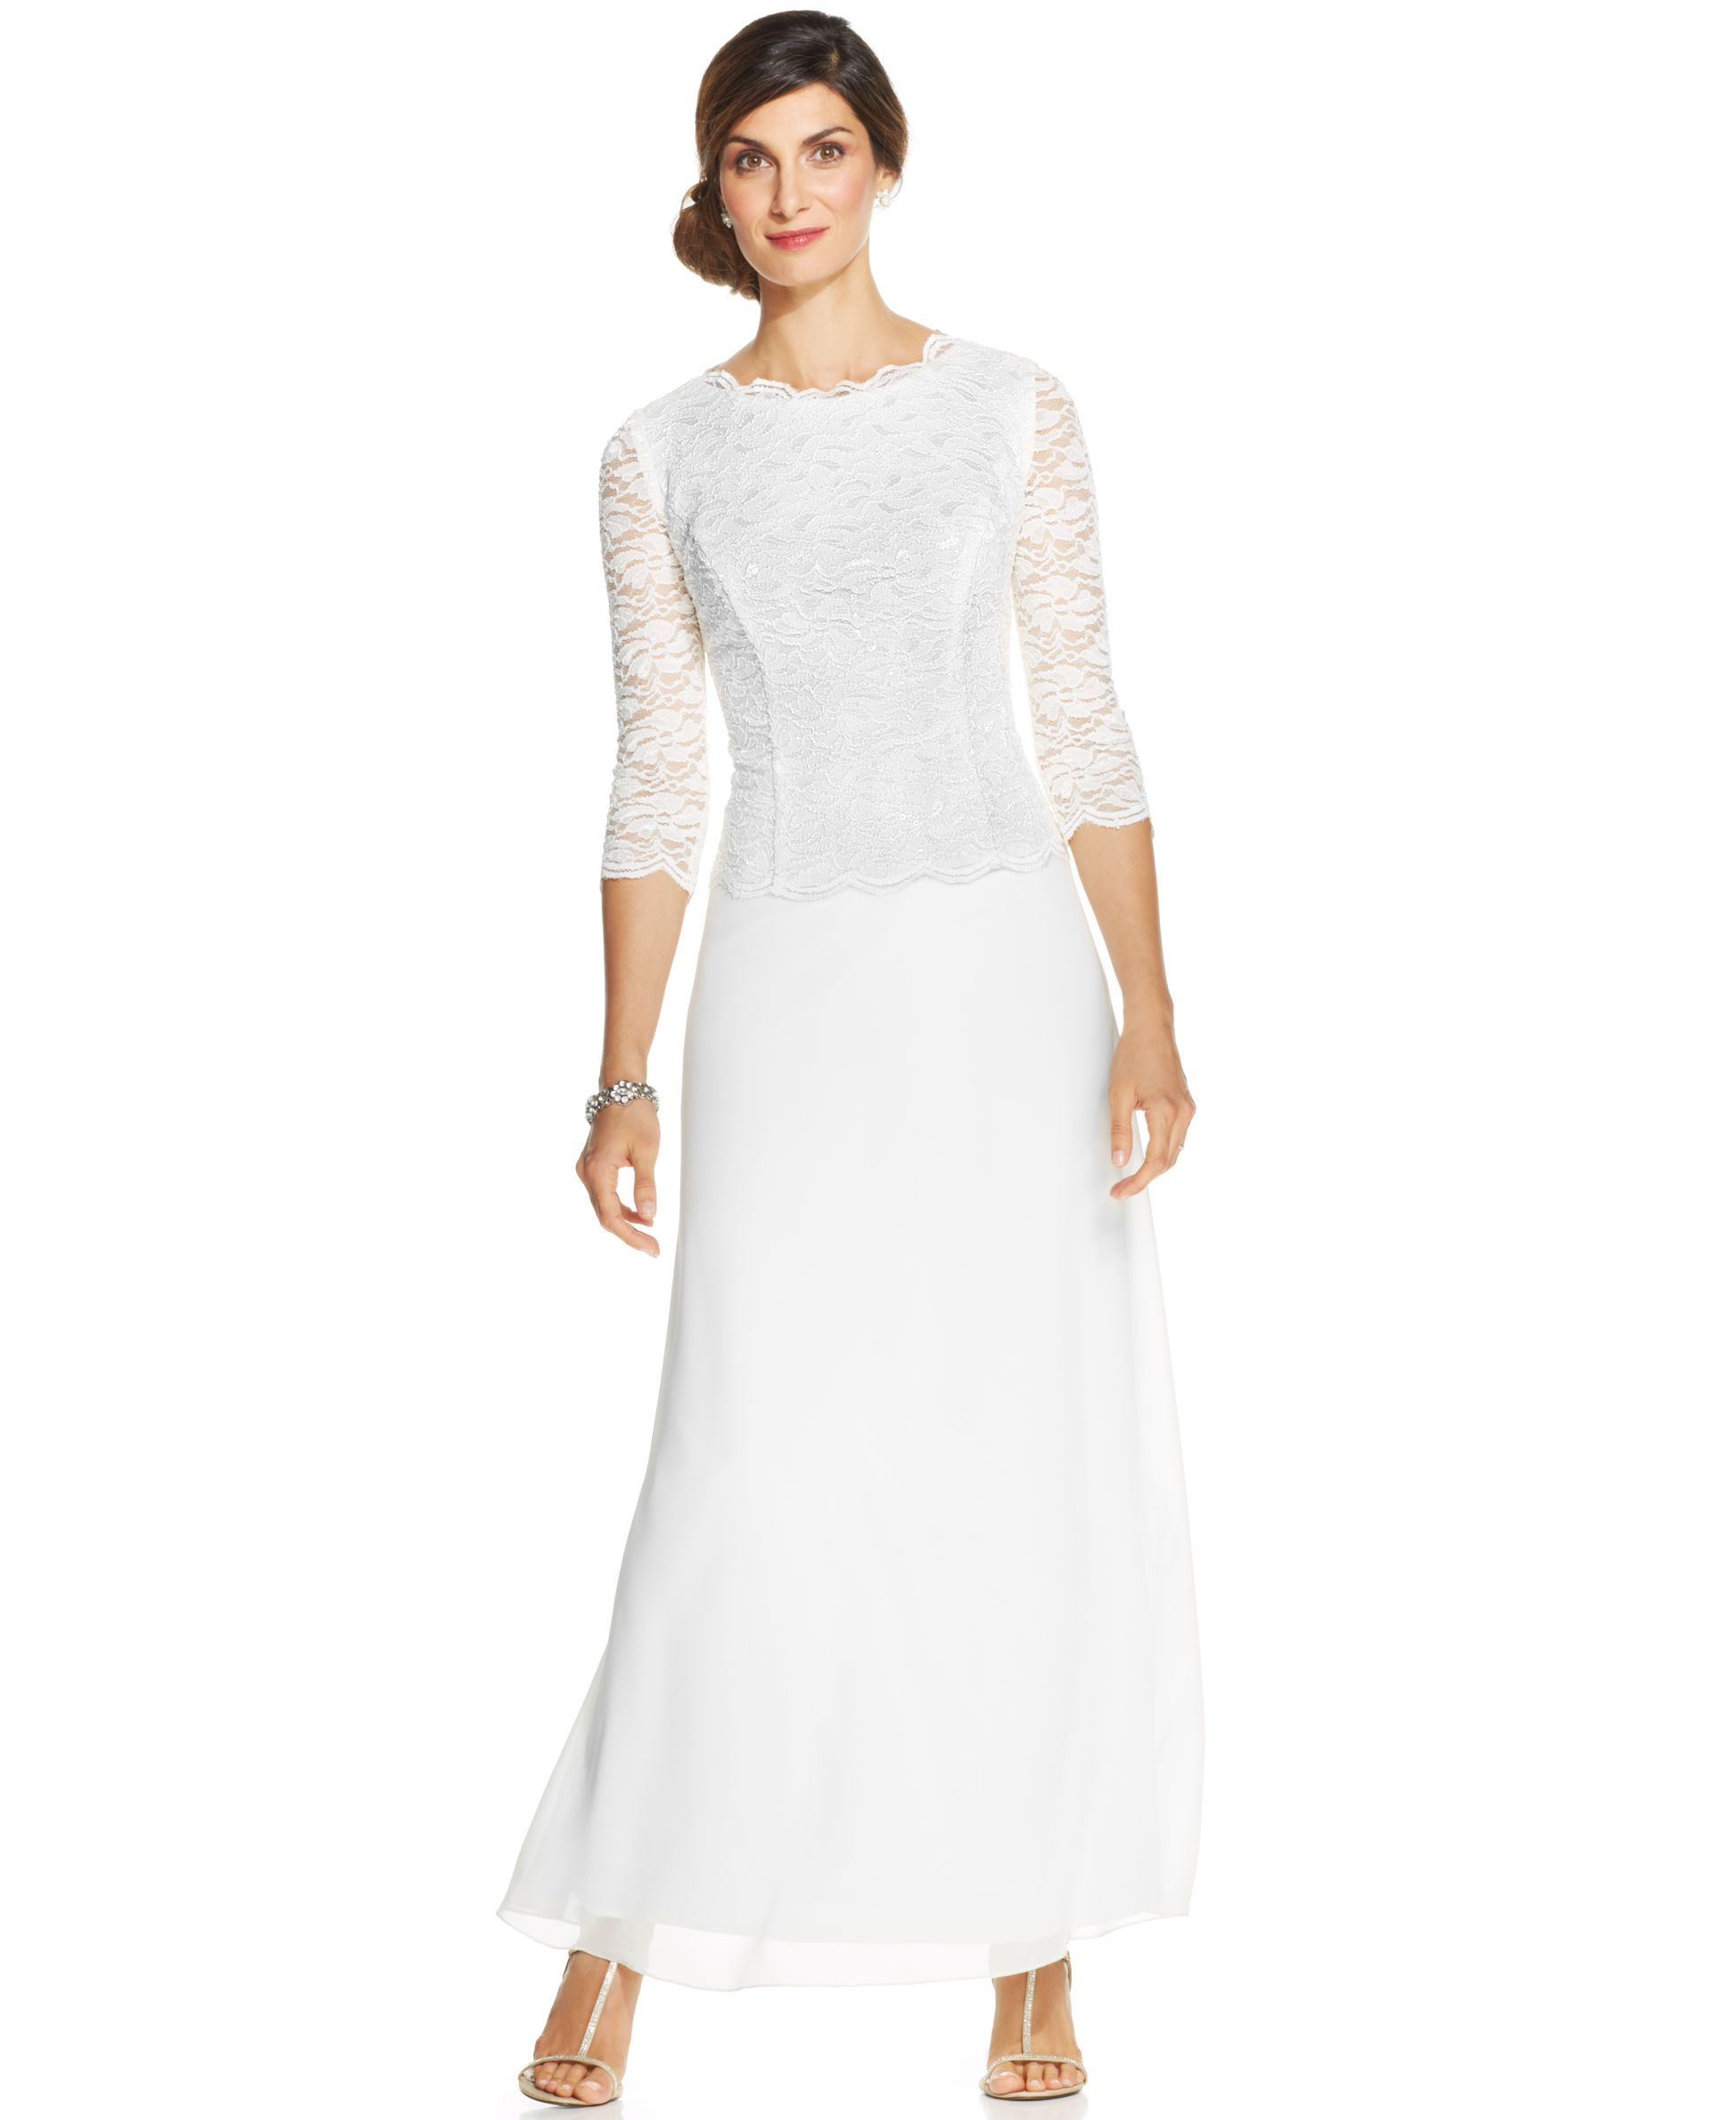 43++ Sequin wedding dress with sleeves information